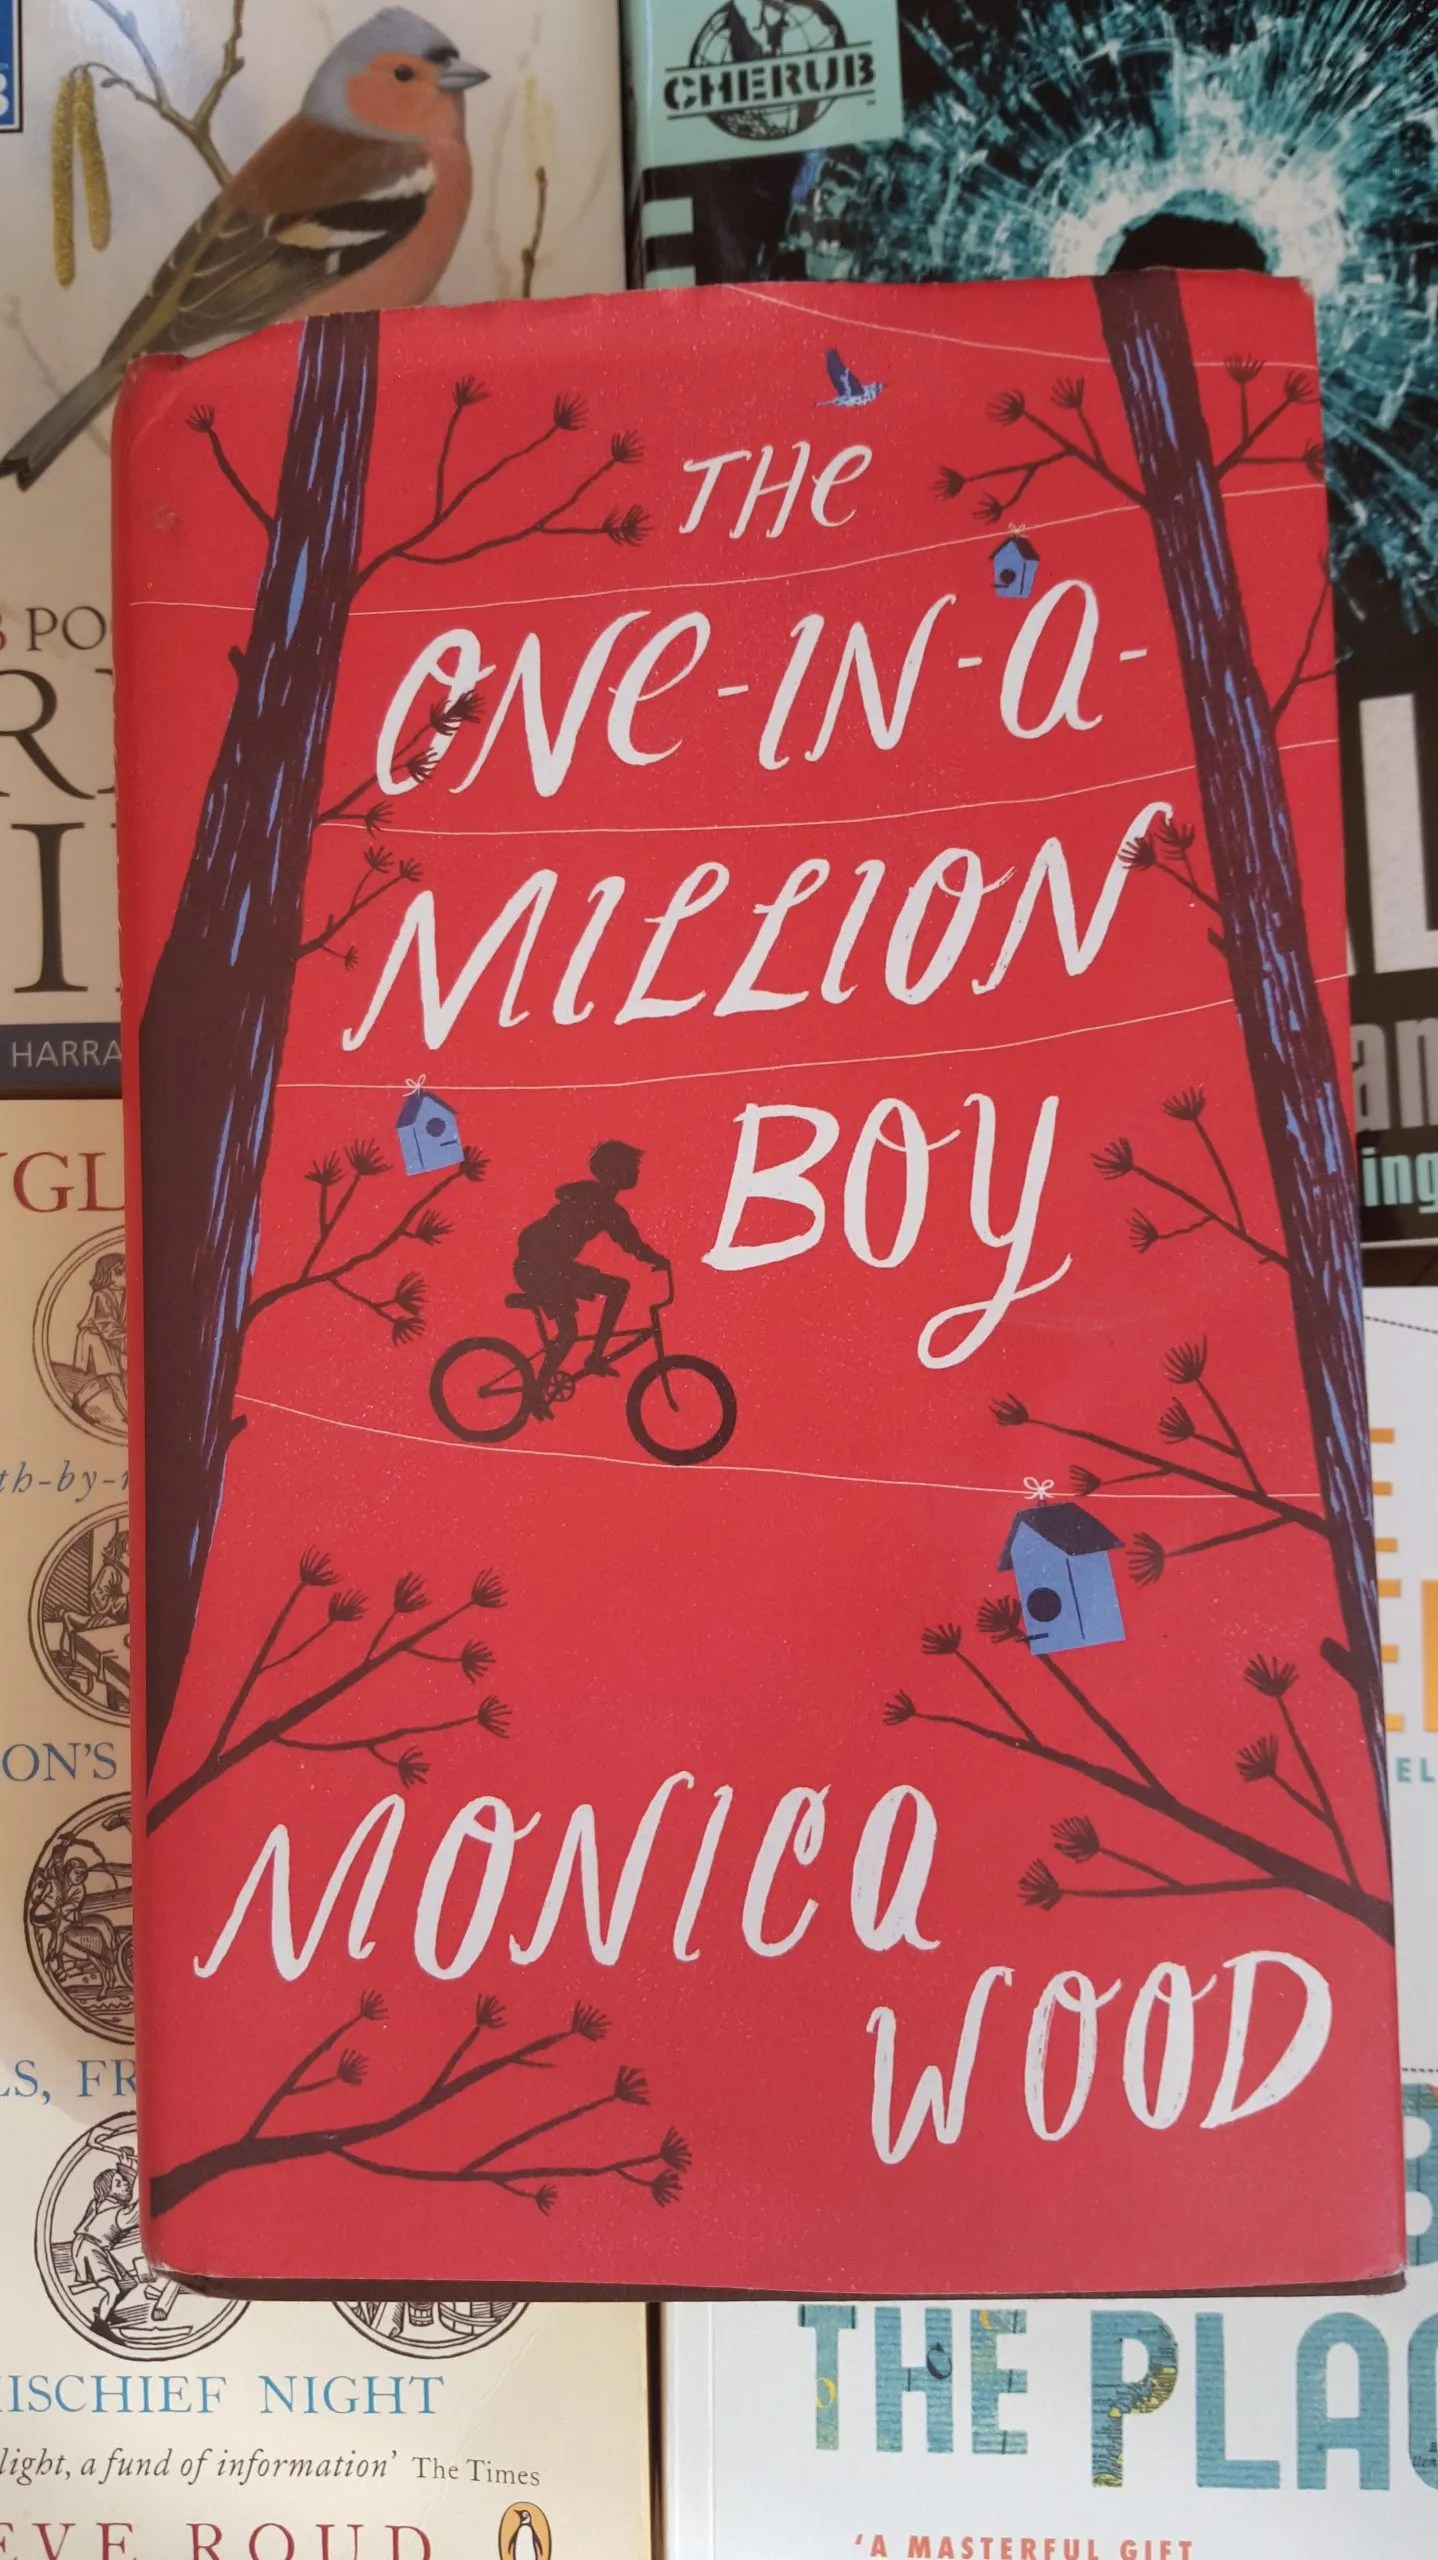 One-in-a-million-boy cover